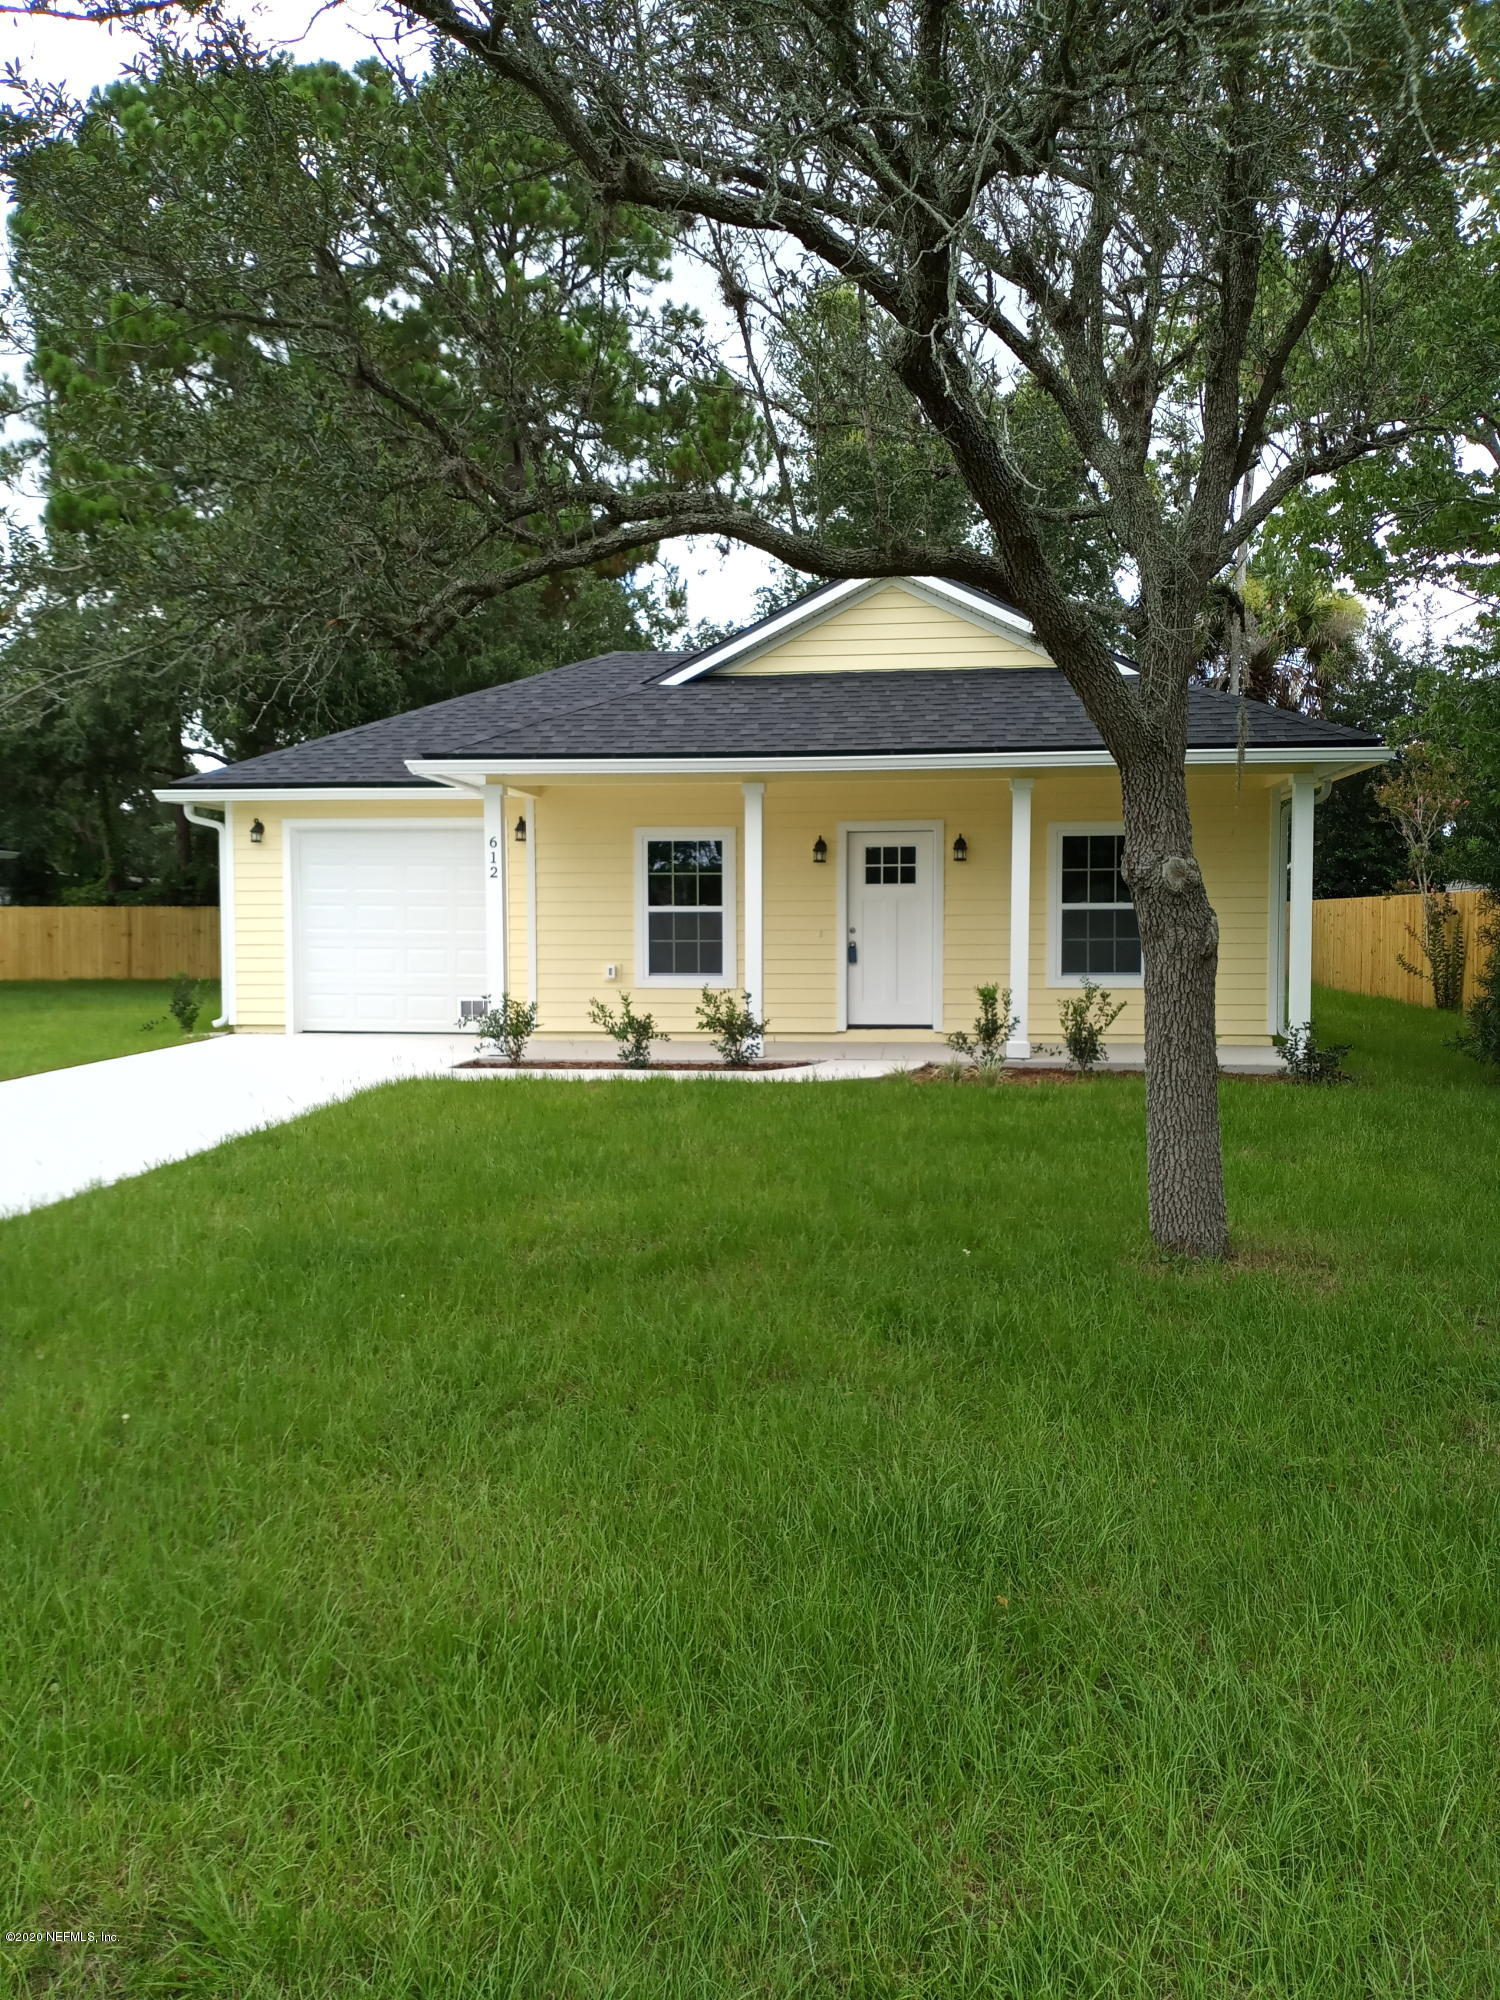 612 16TH, ST AUGUSTINE, FLORIDA 32080, 3 Bedrooms Bedrooms, ,2 BathroomsBathrooms,Residential,For sale,16TH,1047883